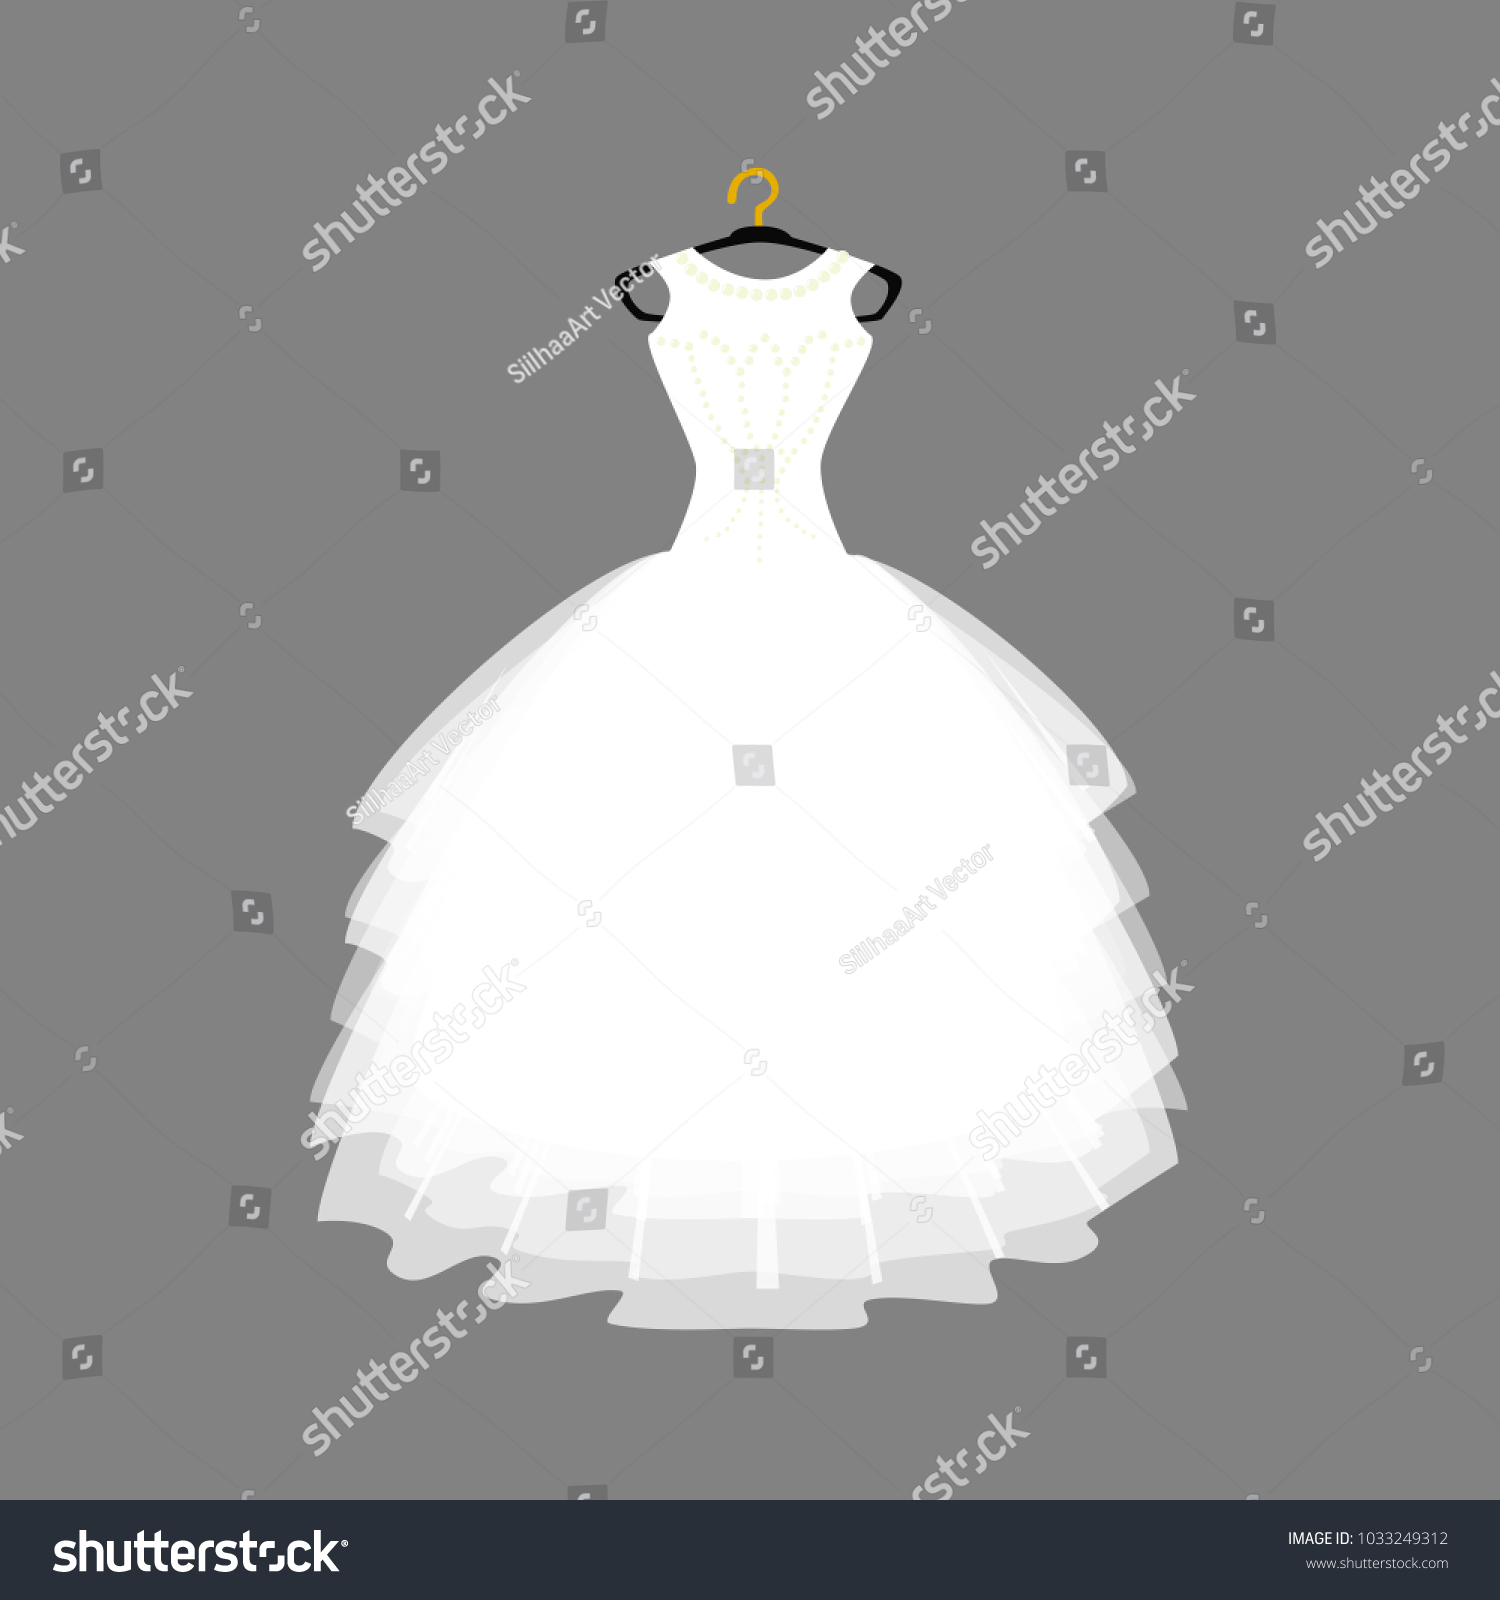 Vector of Ball Gown Long on Hanger Wedding Gown Illustration on Grey Background